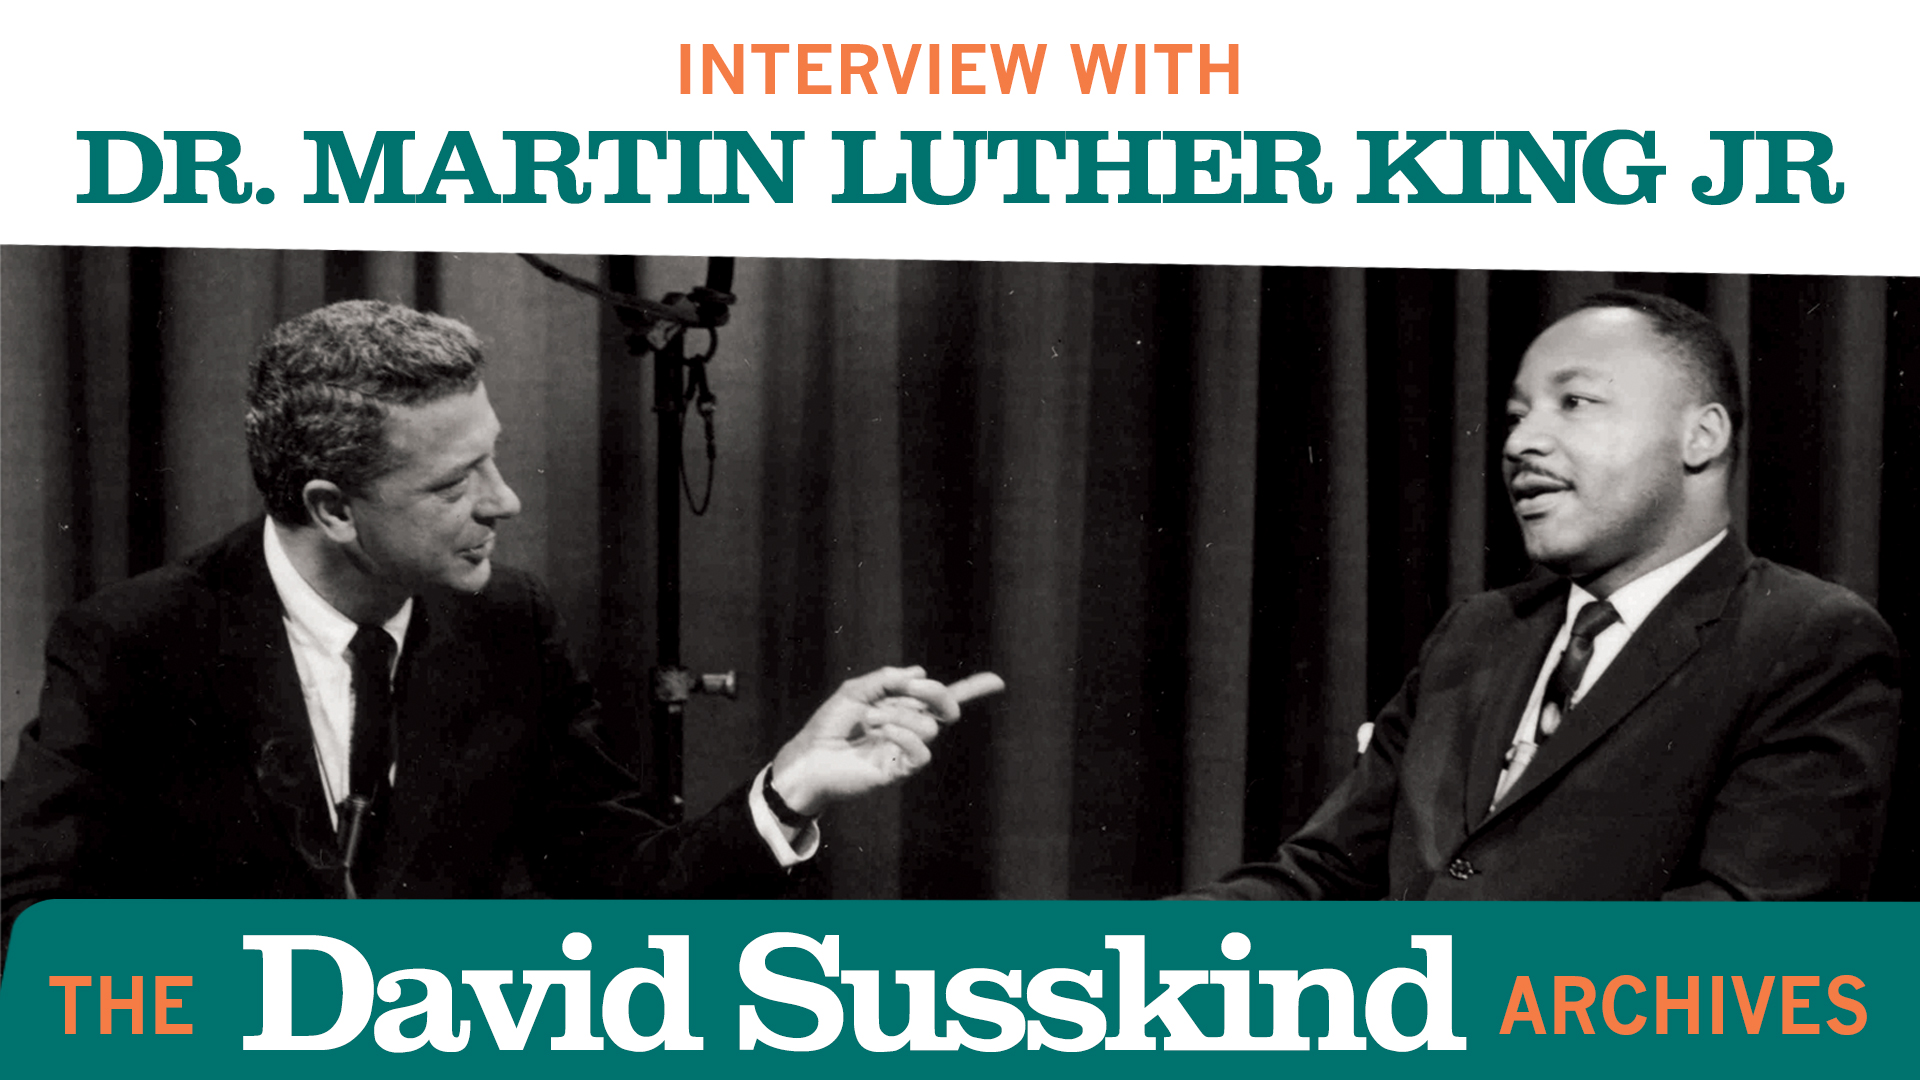 David Susskind Archive: Interview With Dr. Martin Luther King Jr